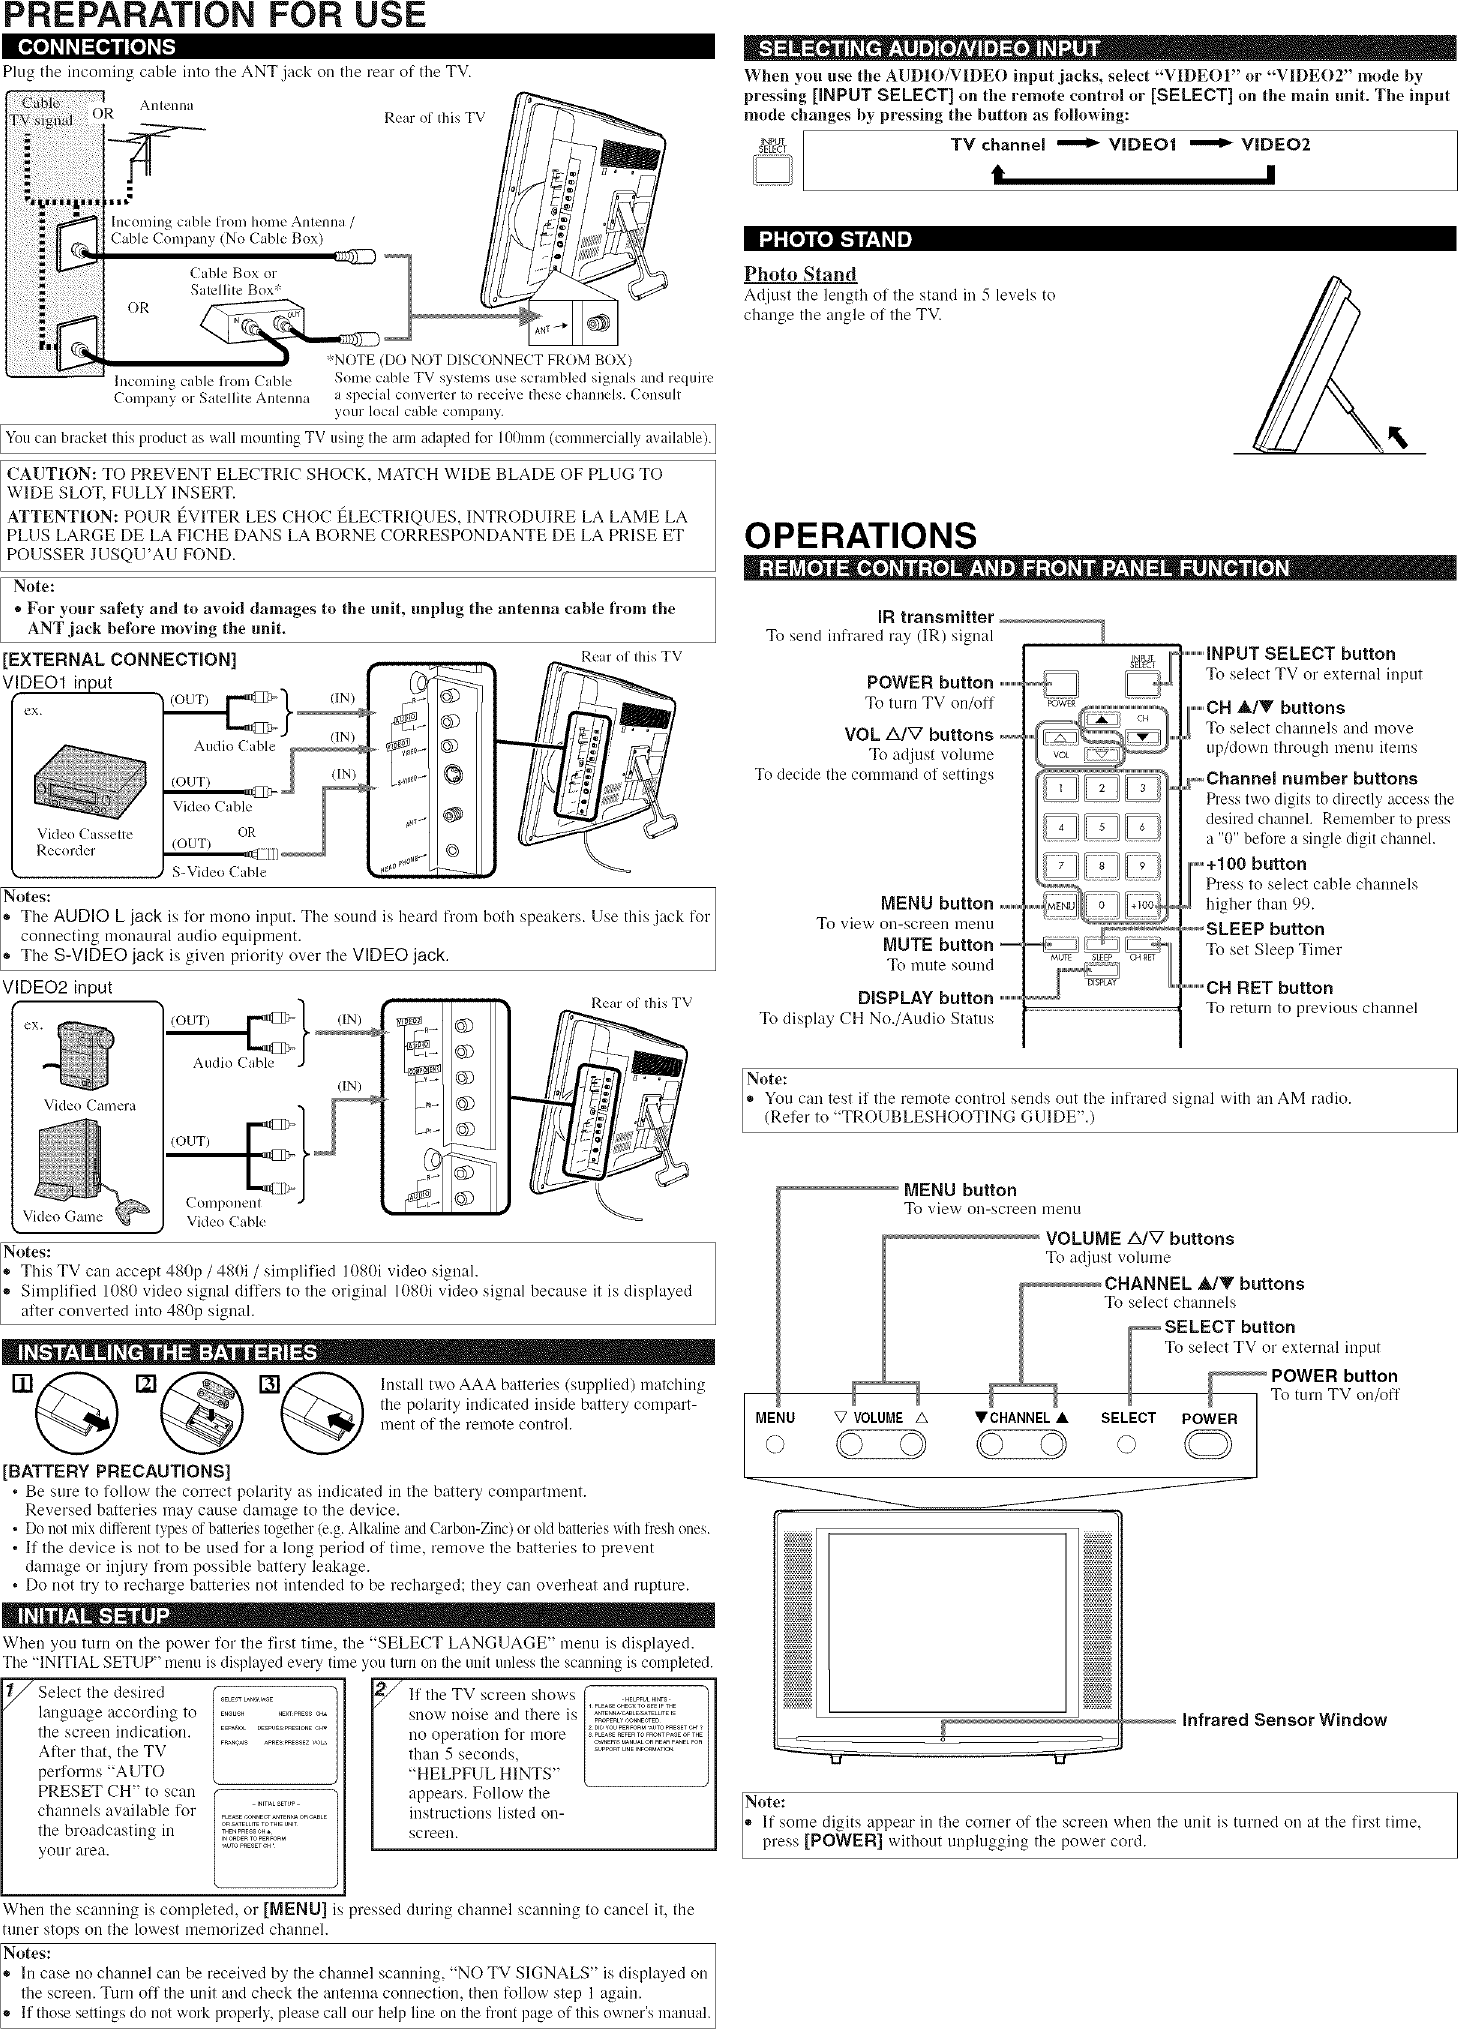 Sylvania 6615LCT User Manual LCD TELEVISION Manuals And